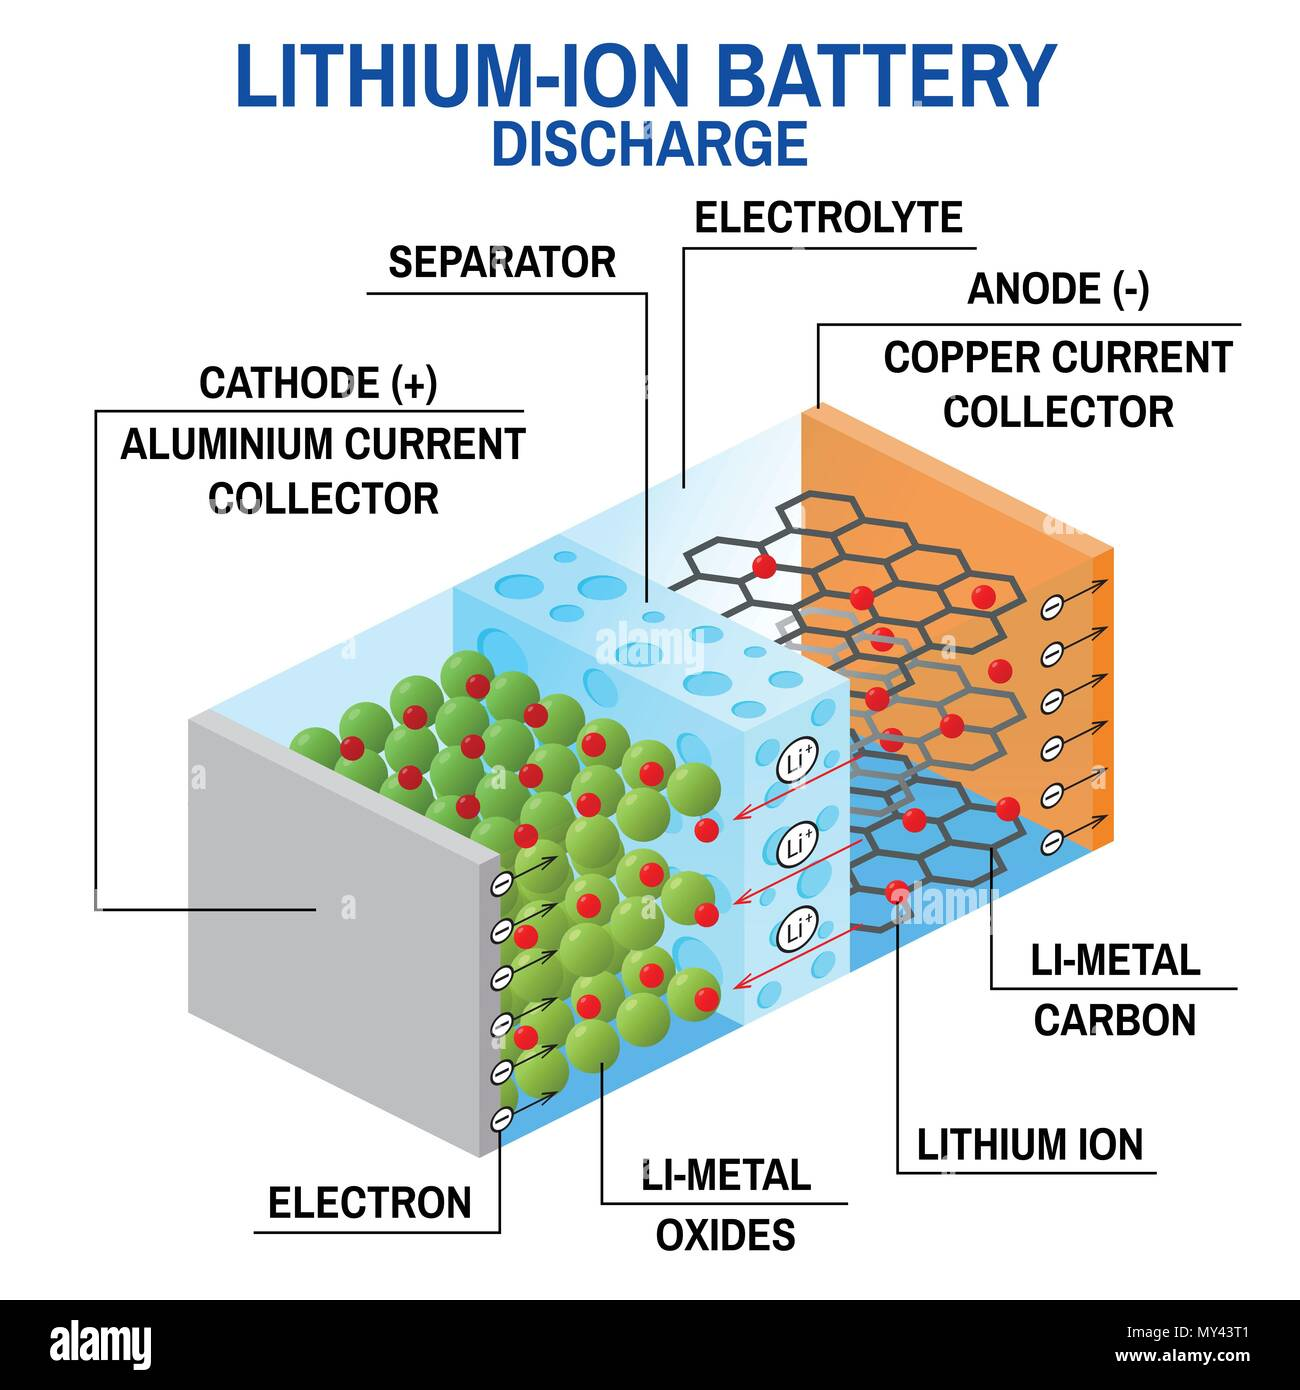 li ion battery diagram vector illustration rechargeable battery in Rechargeable Battery Cell Diagrams